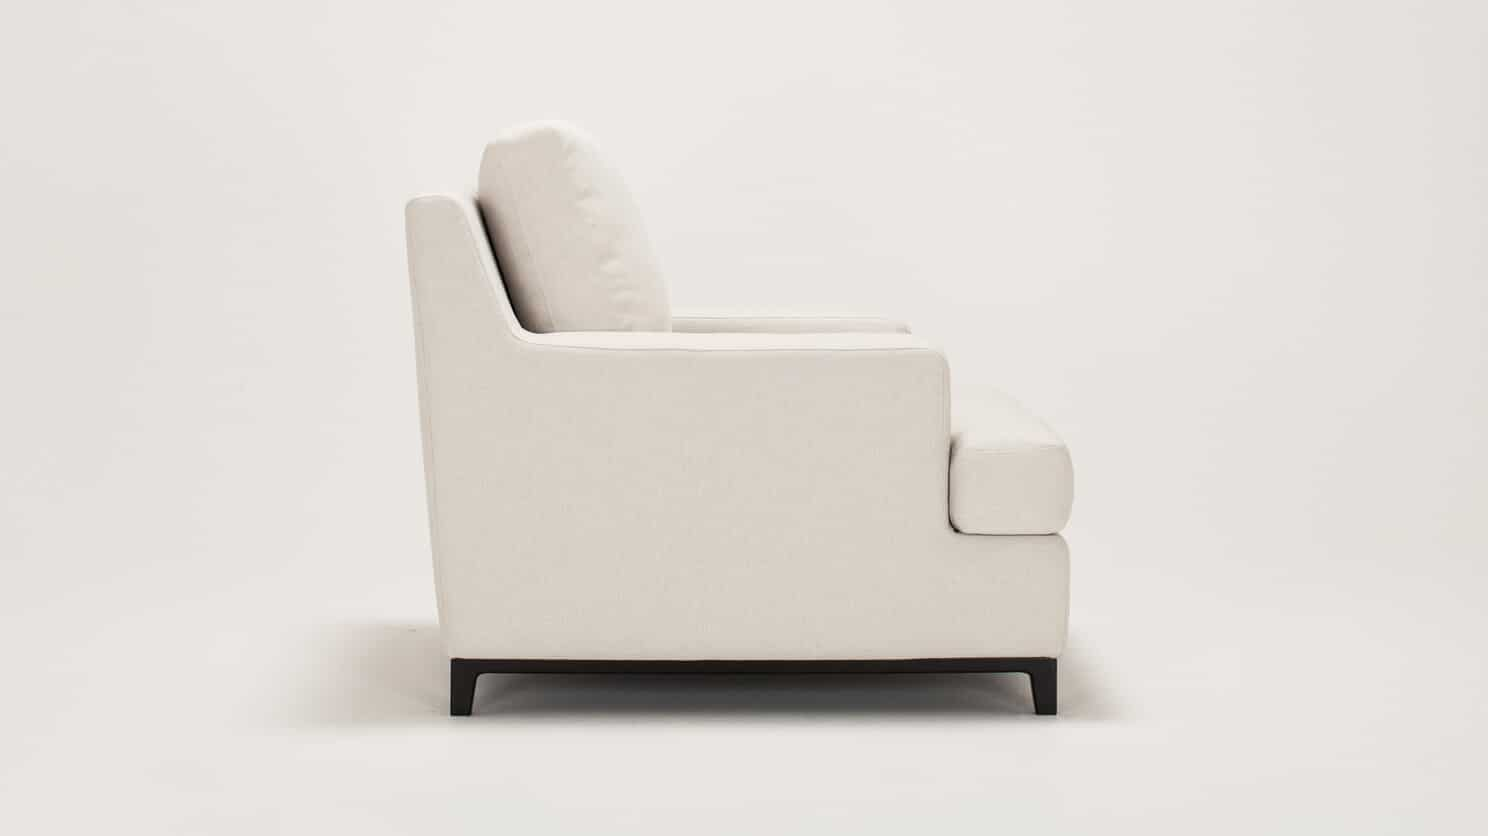 30113 02 3 chairs blanche chair polo cream side